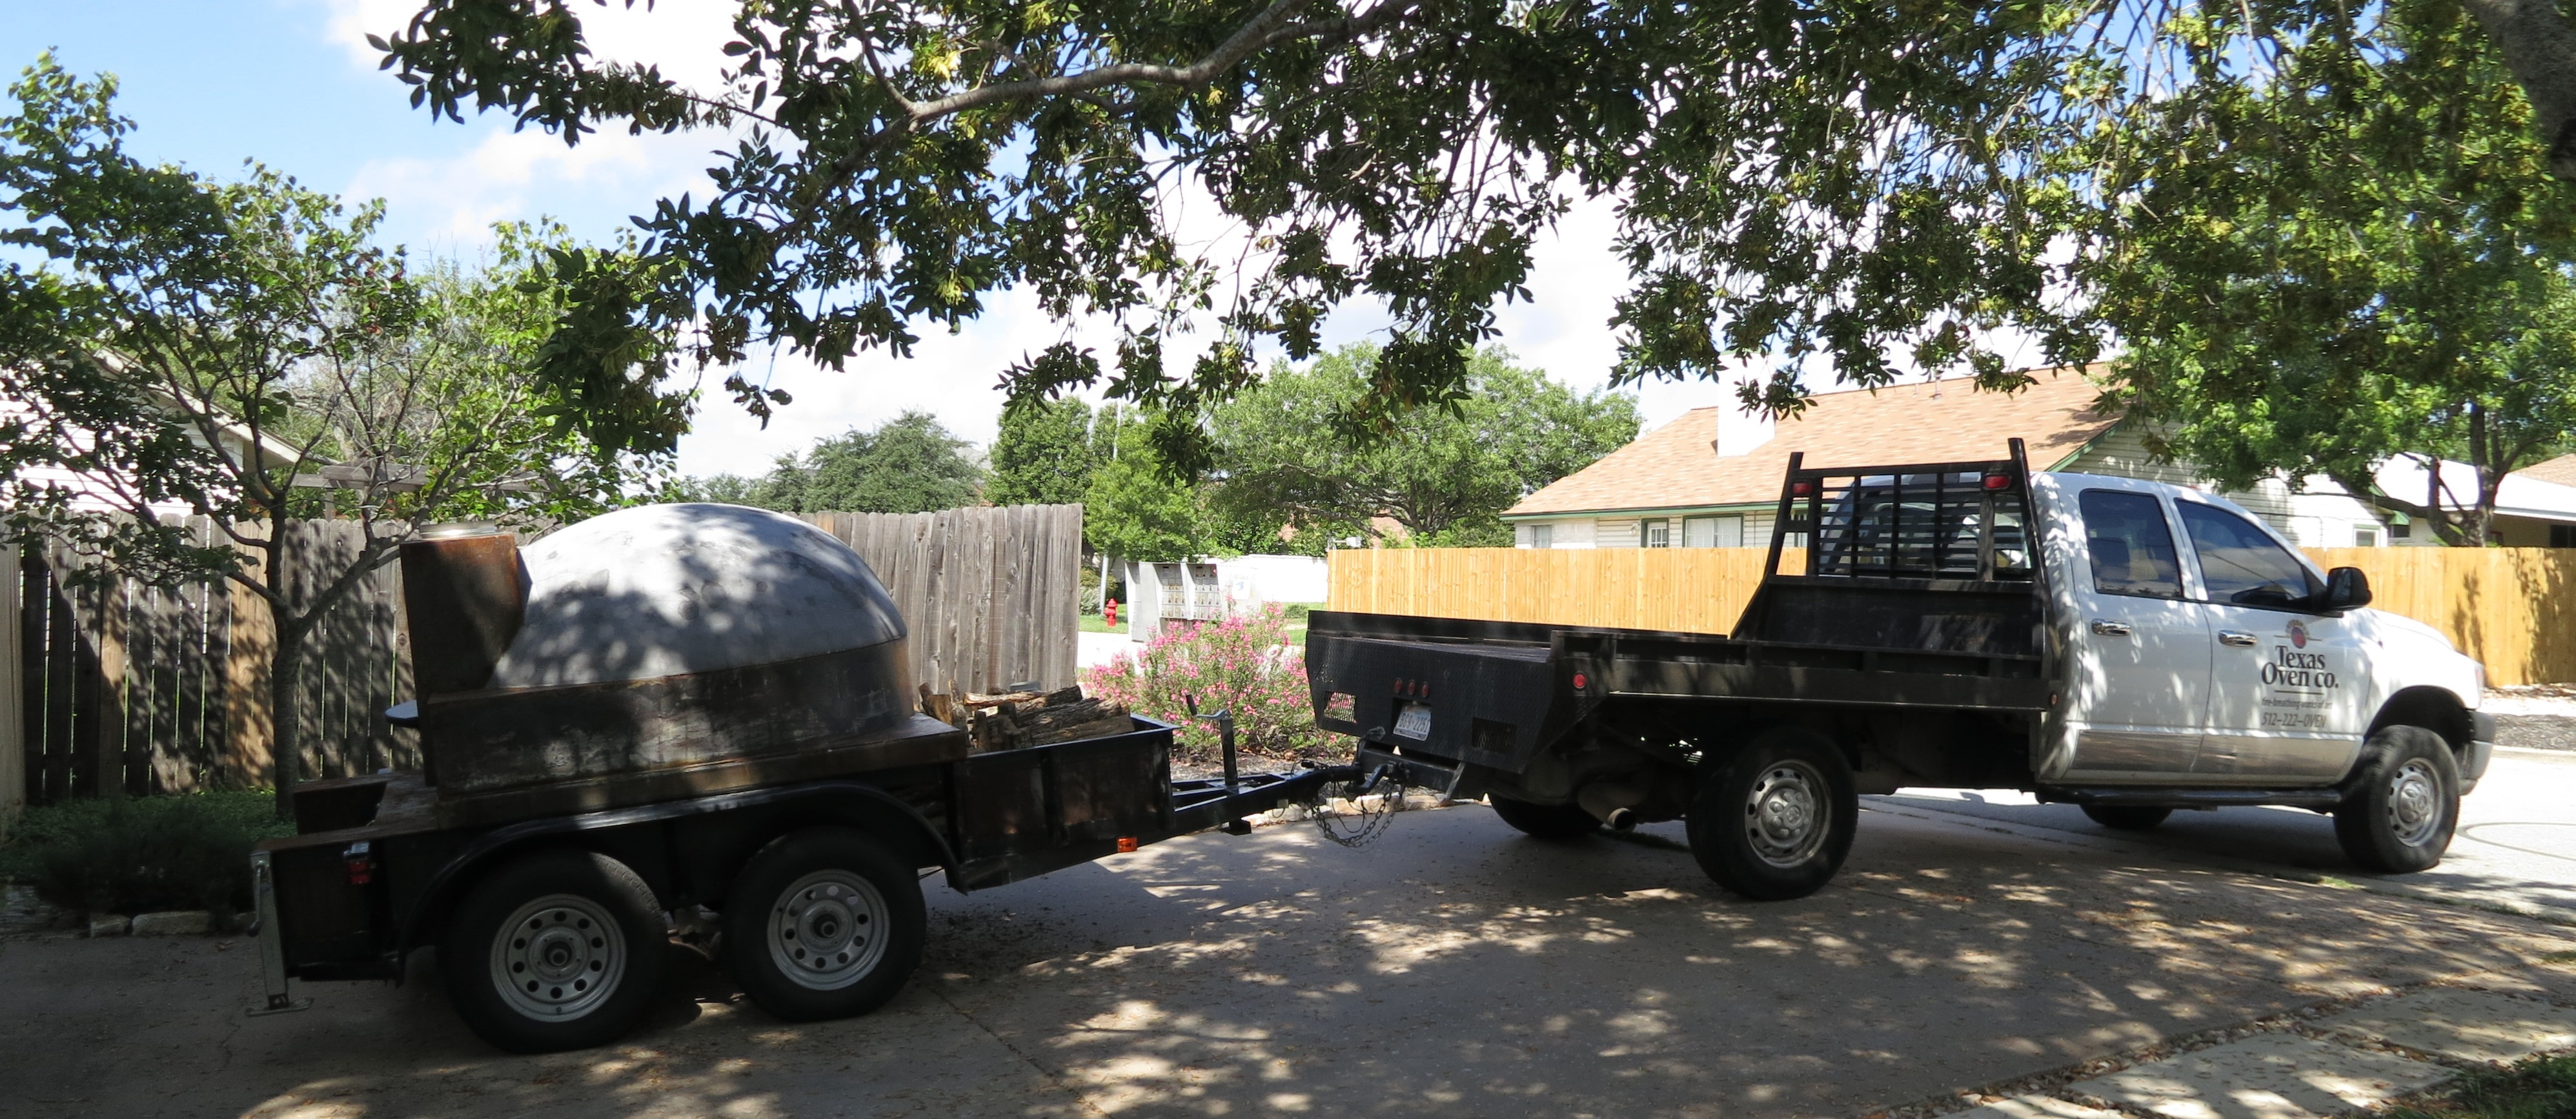 Portable wood fired pizza oven for sale - Mobile Pizza Ovens Austin Tx